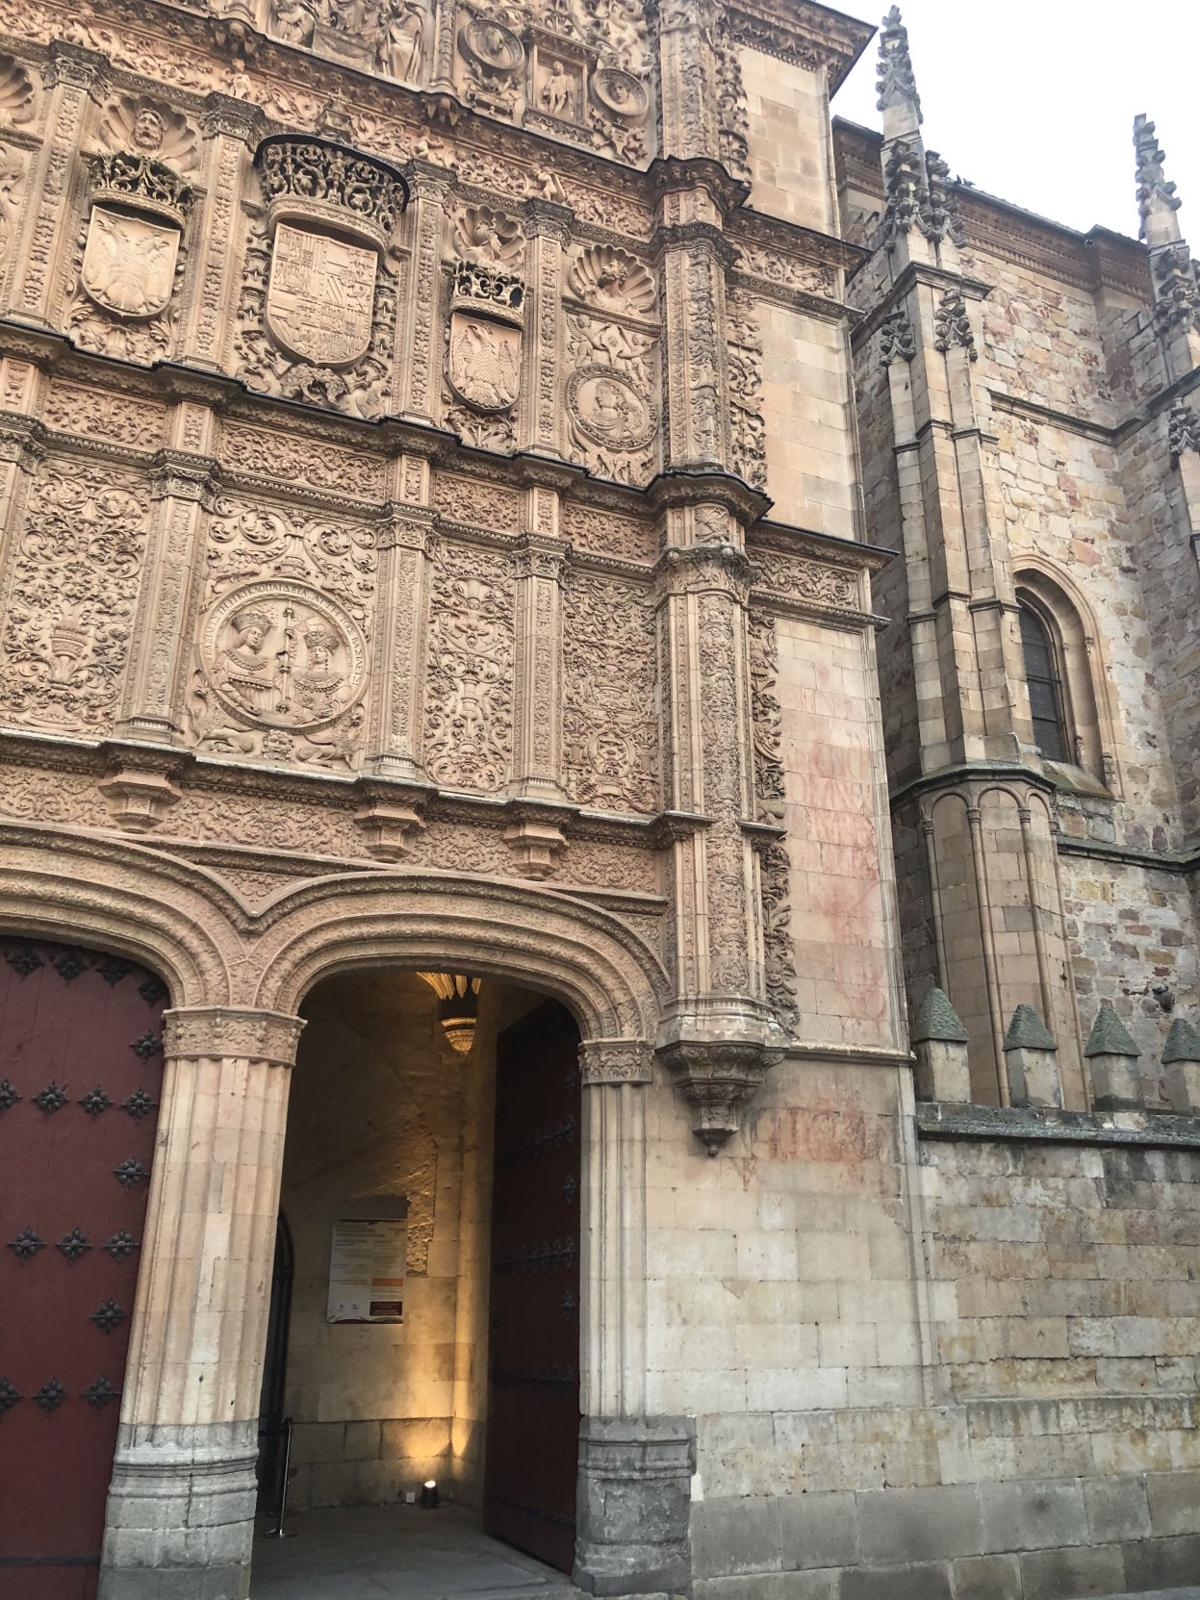 The facade of the University of Salamanca has two archways below ornate relief sculptures in the exterior walls